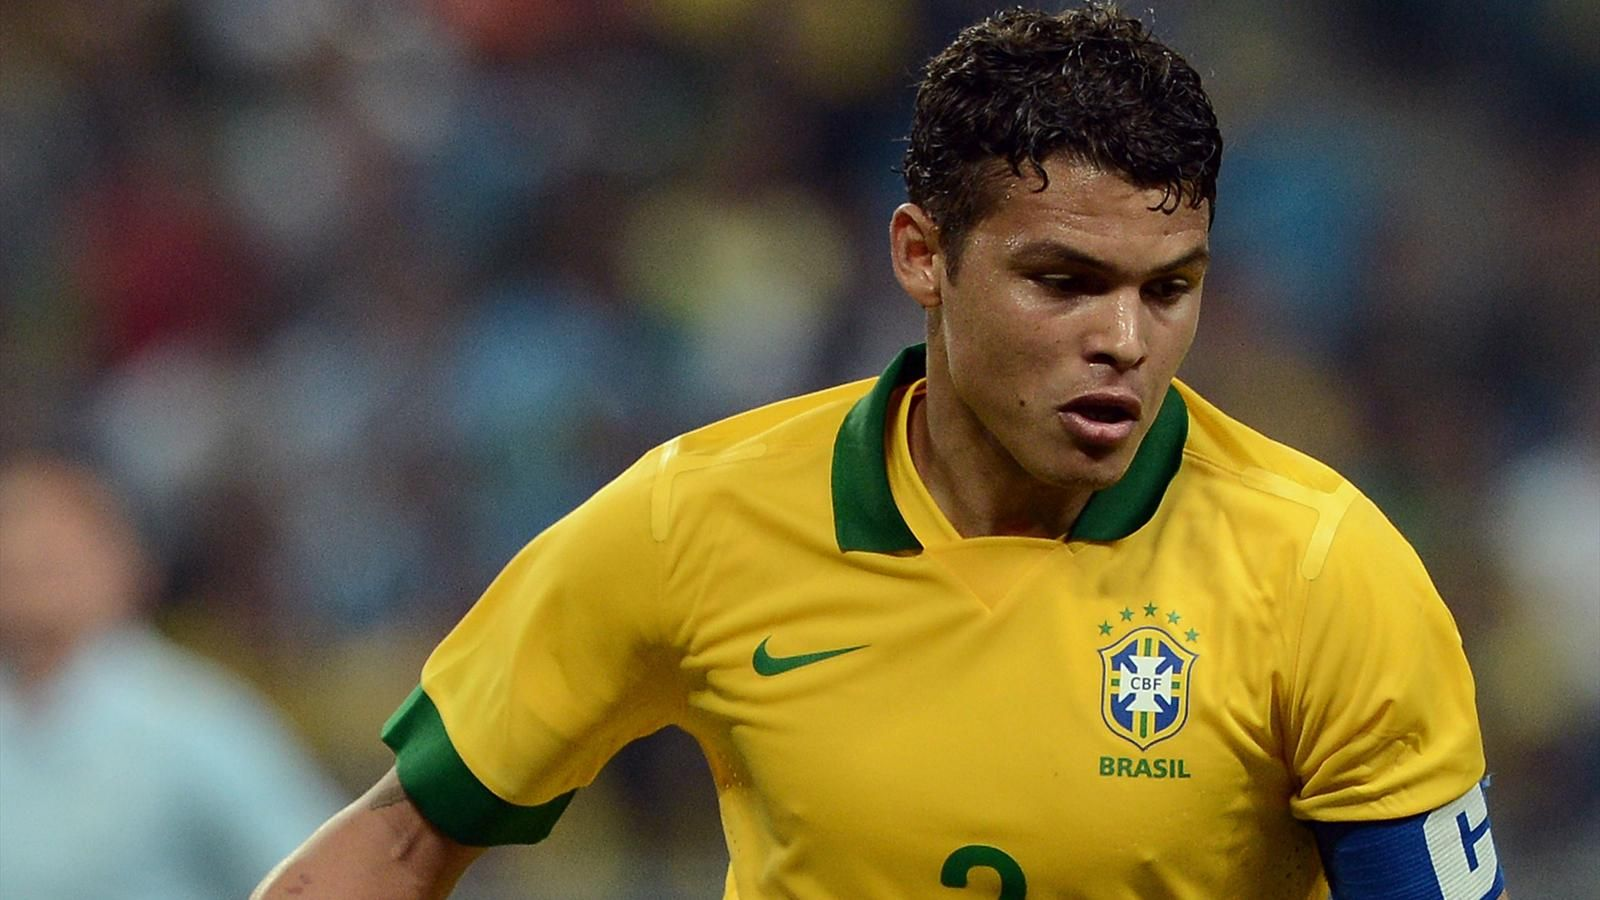 Desktop thiago silva football soccer player mobile background desktop thiago silva football soccer player mobile background download hd free wallpapers voltagebd Choice Image